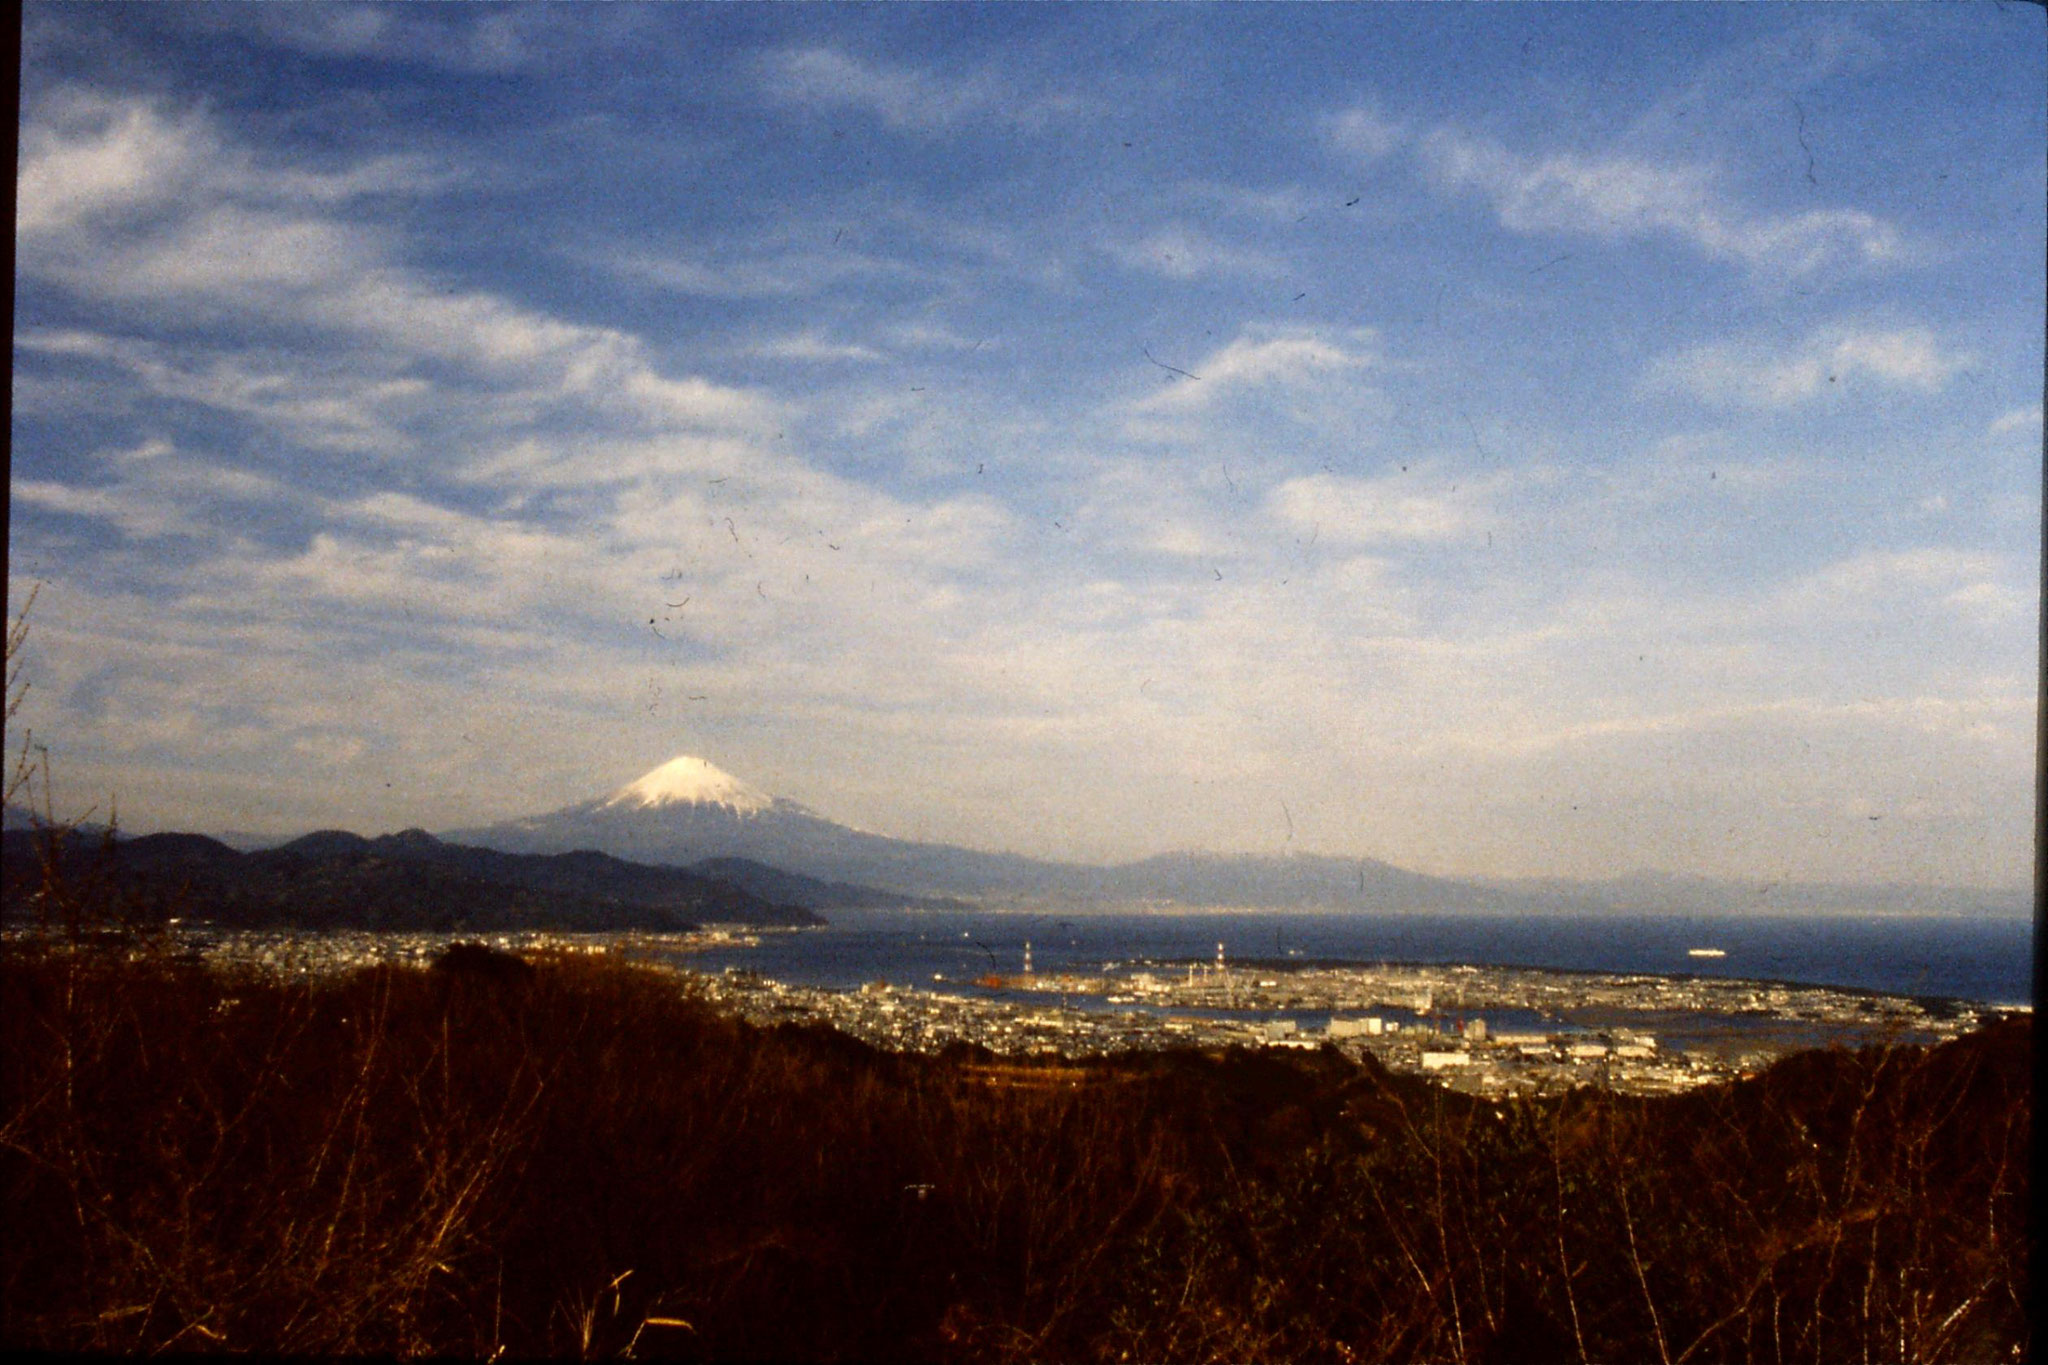 27/1/1989: 23: view of Fuji from Nihon Dara